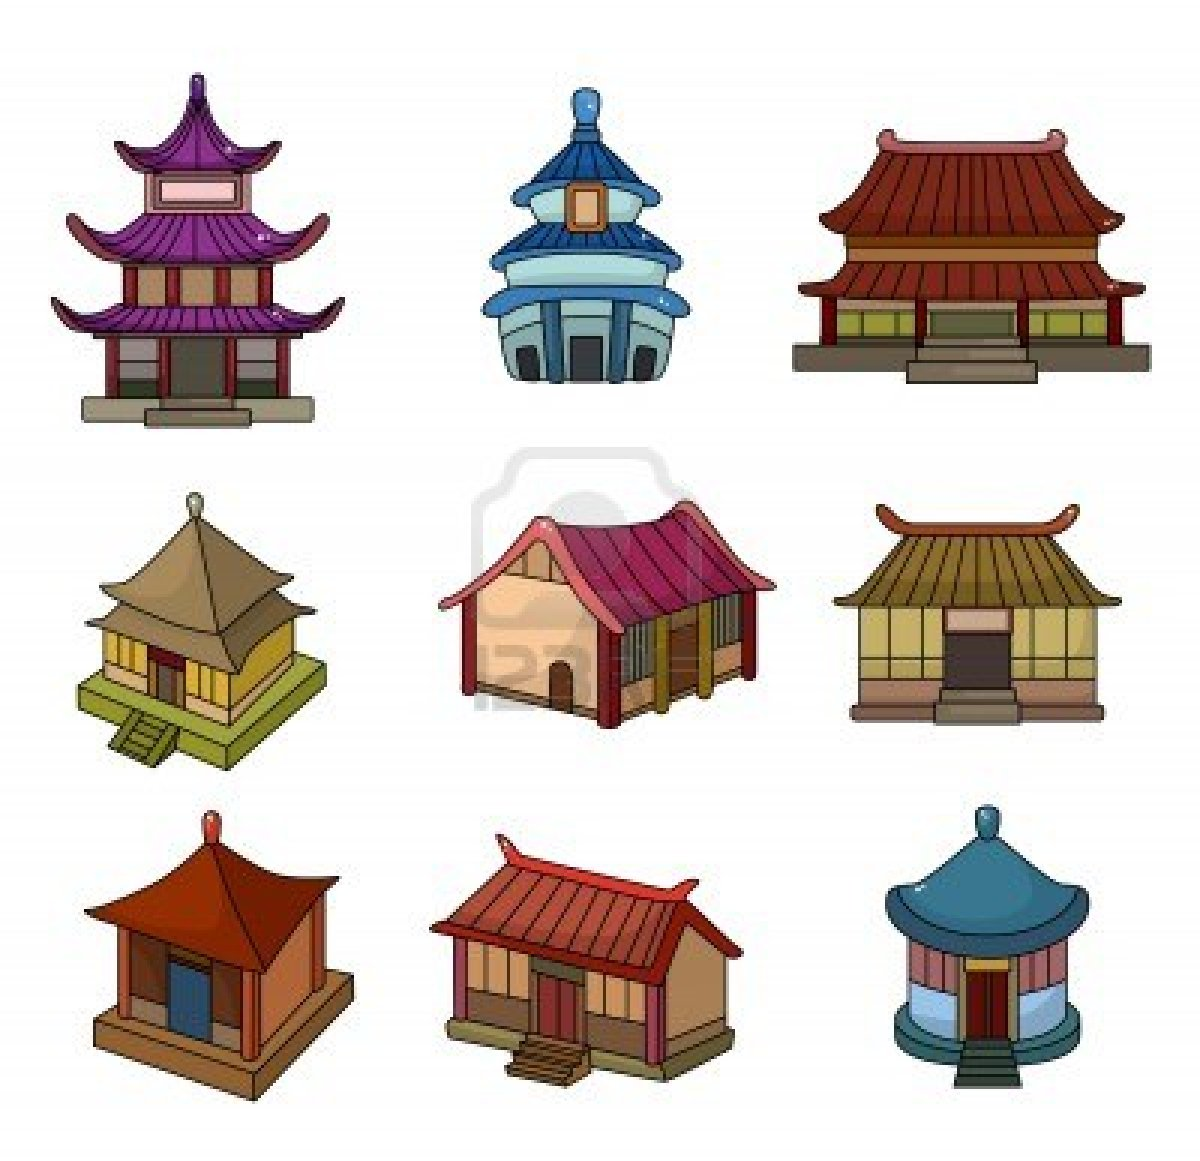 China clipart chinese building Cartoon Pinterest Icon Treehouse Set